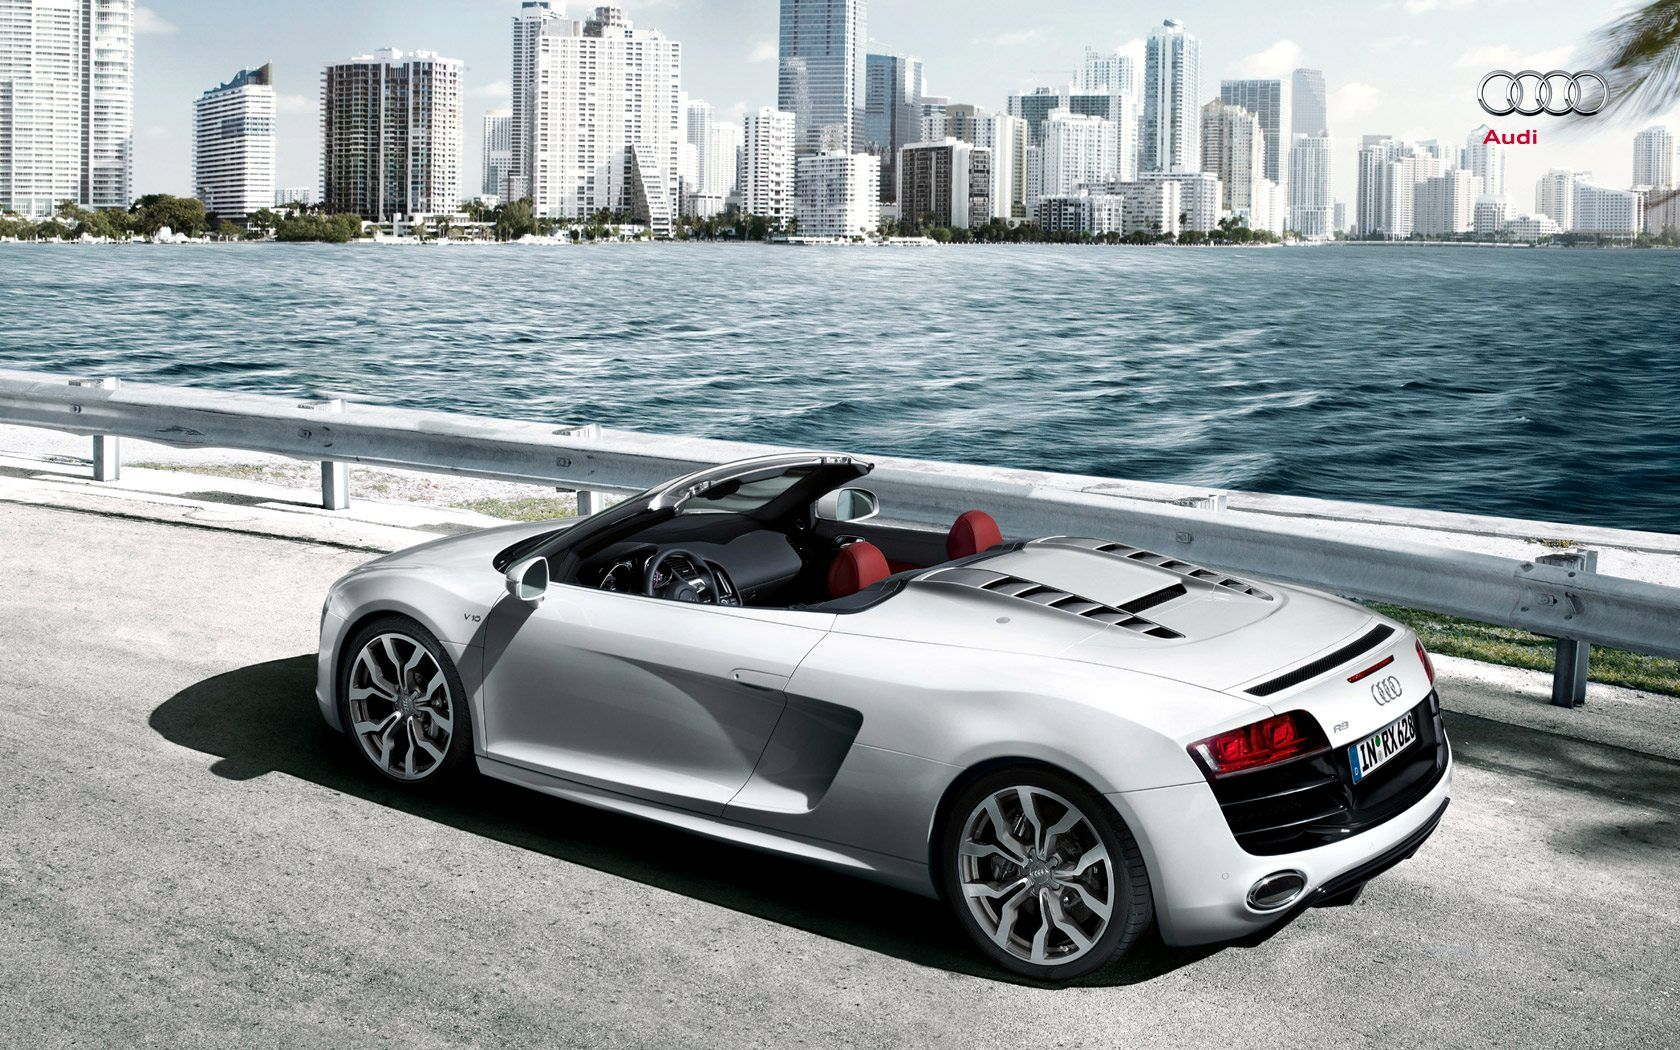 R8 Spyder 5 2 Fsi Quattro The R8 V10 Spyder The Photos Showed A Clearly Visible Soft Top Roof And The Unique Audi R8 Spyder Audi R8 Audi R8 Convertible